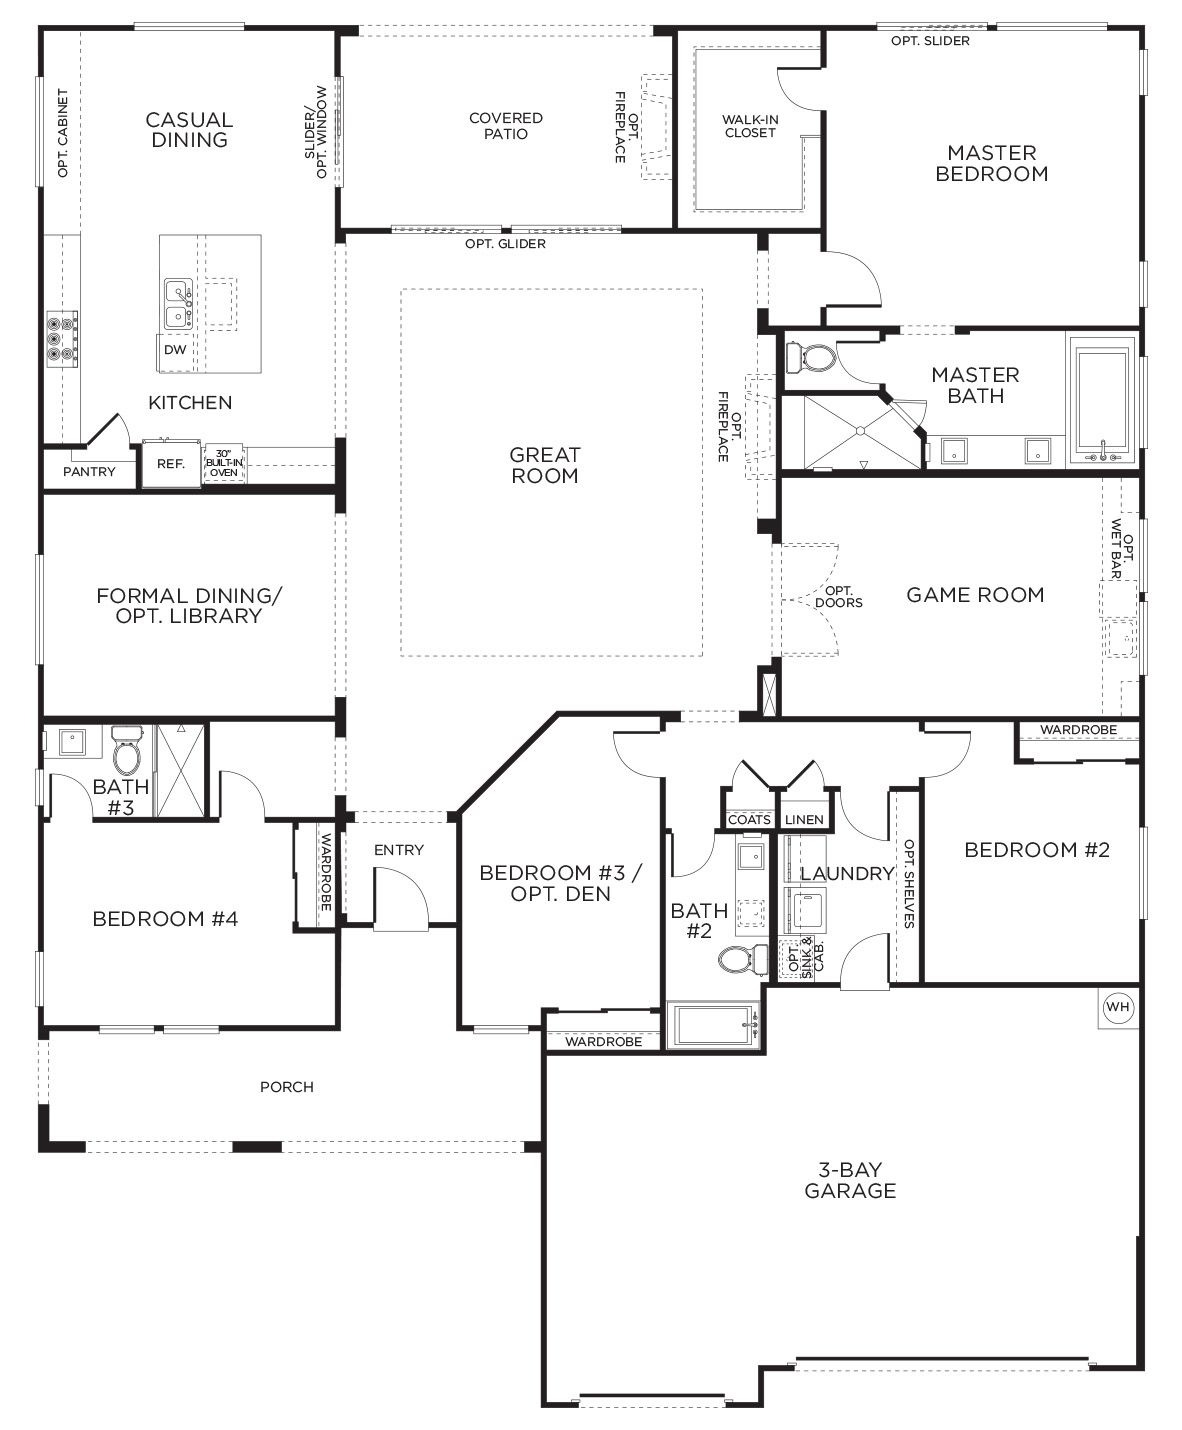 One Story House Plans Luxury Love This Layout with Extra Rooms Single Story Floor Plans